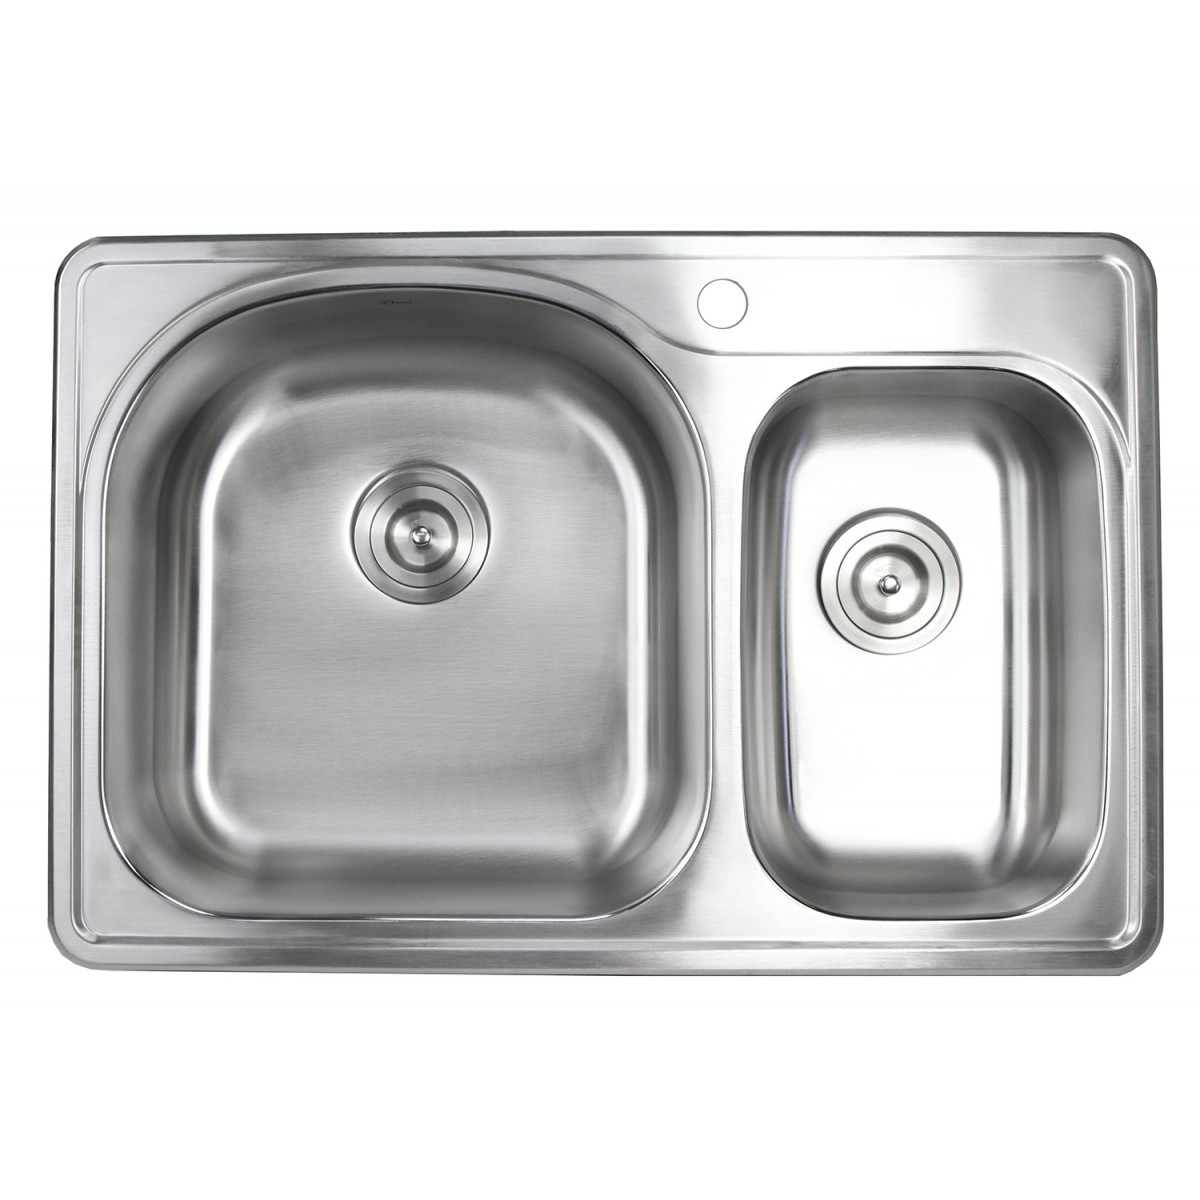 33 Inch Top Mount Drop In Stainless Steel 70 30 Double Bowl Kitchen Sink With 1 Faucet Hole